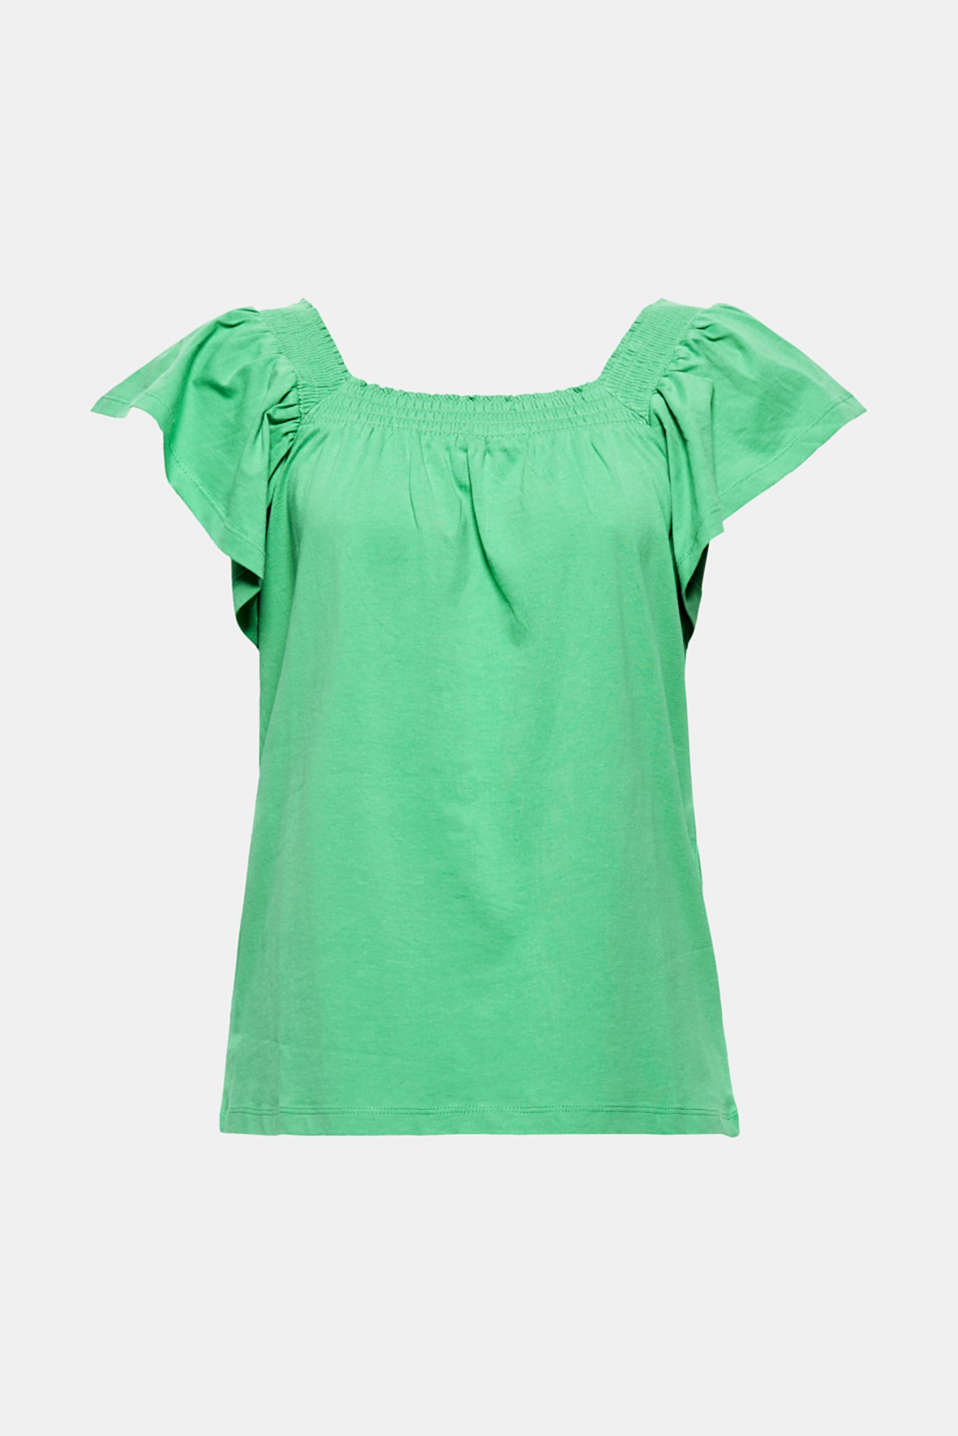 Cool summer style! The square neckline, wide cap sleeves and fashionable A-line make this lightweight T-shirt fantastically feminine and extremely eye-catching!